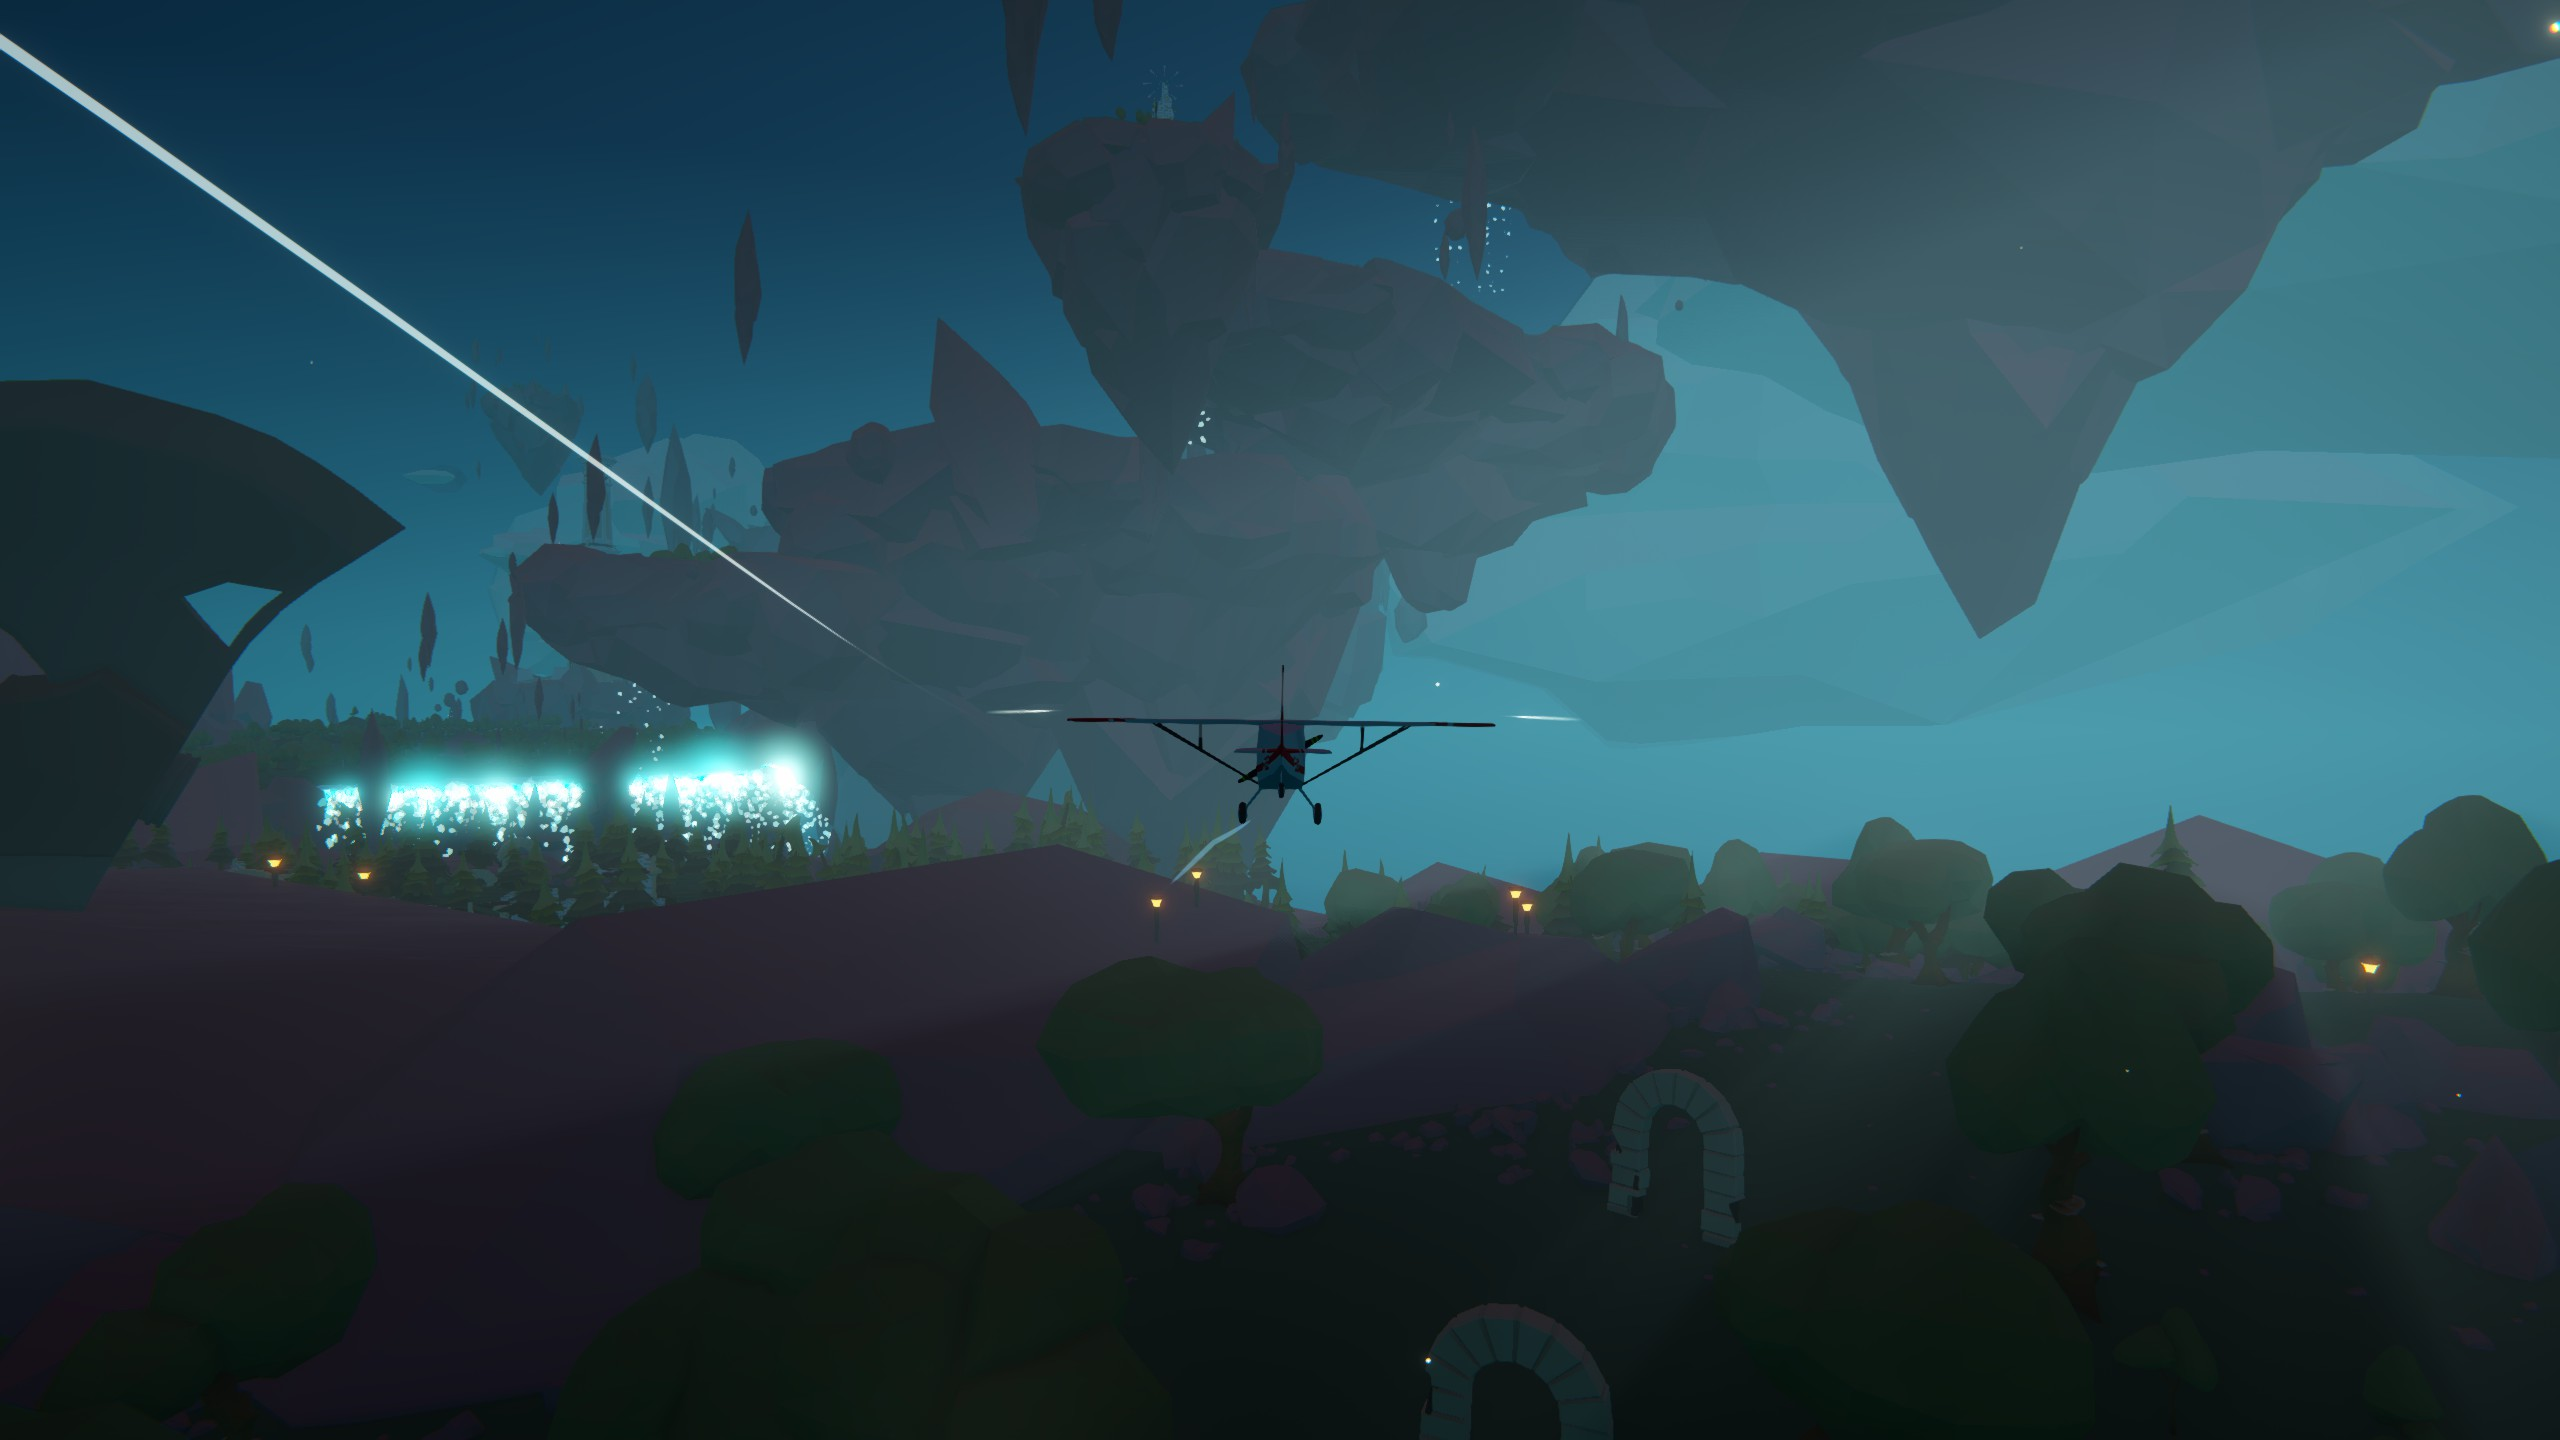 Take flight in Eole the free contemplative flight simulator